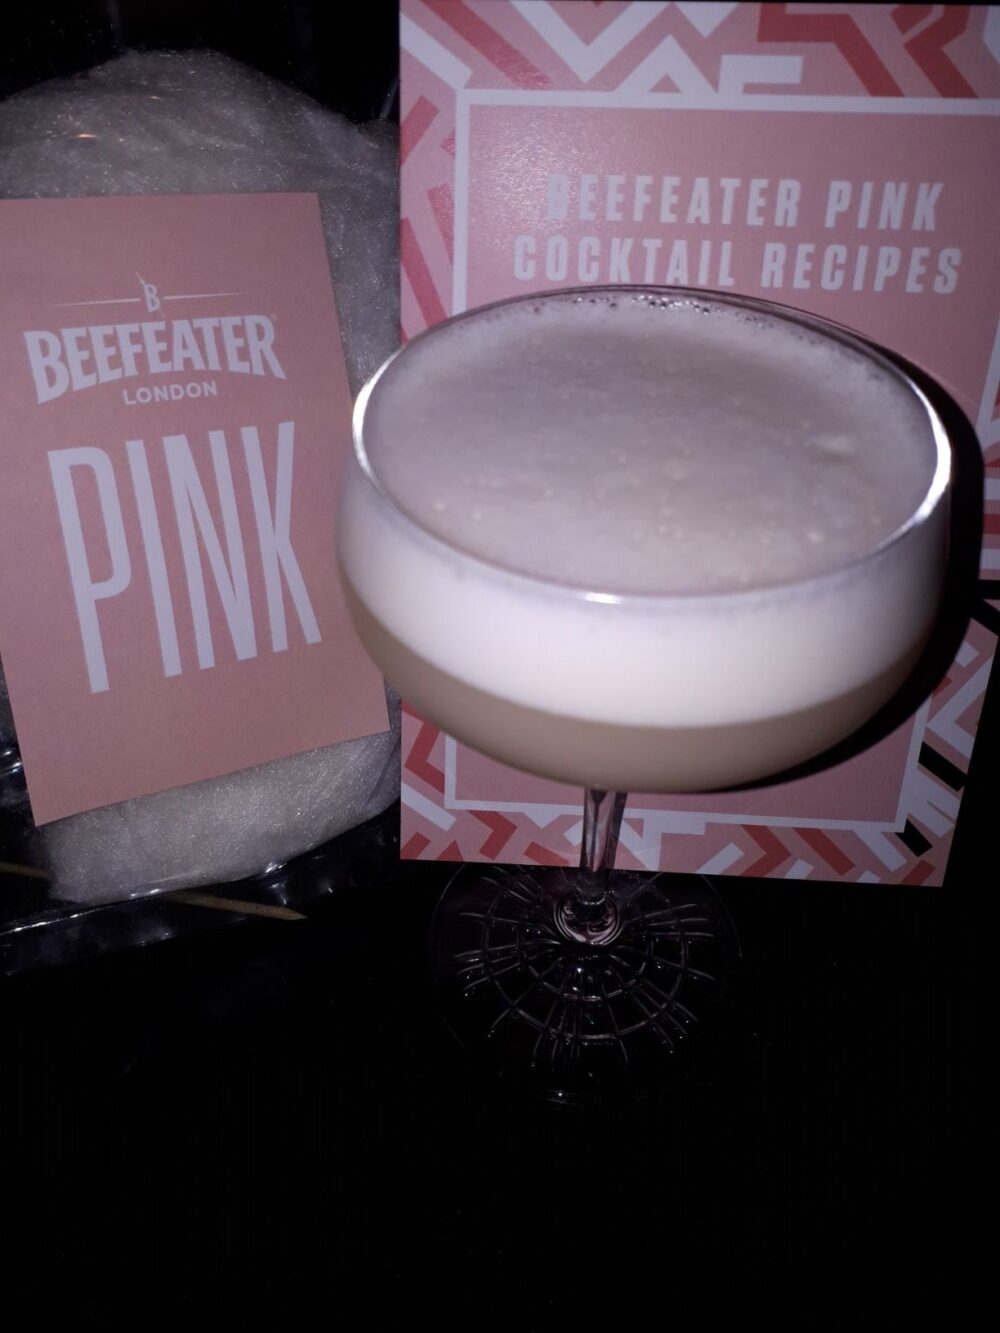 Beefeater Pink Cocktail